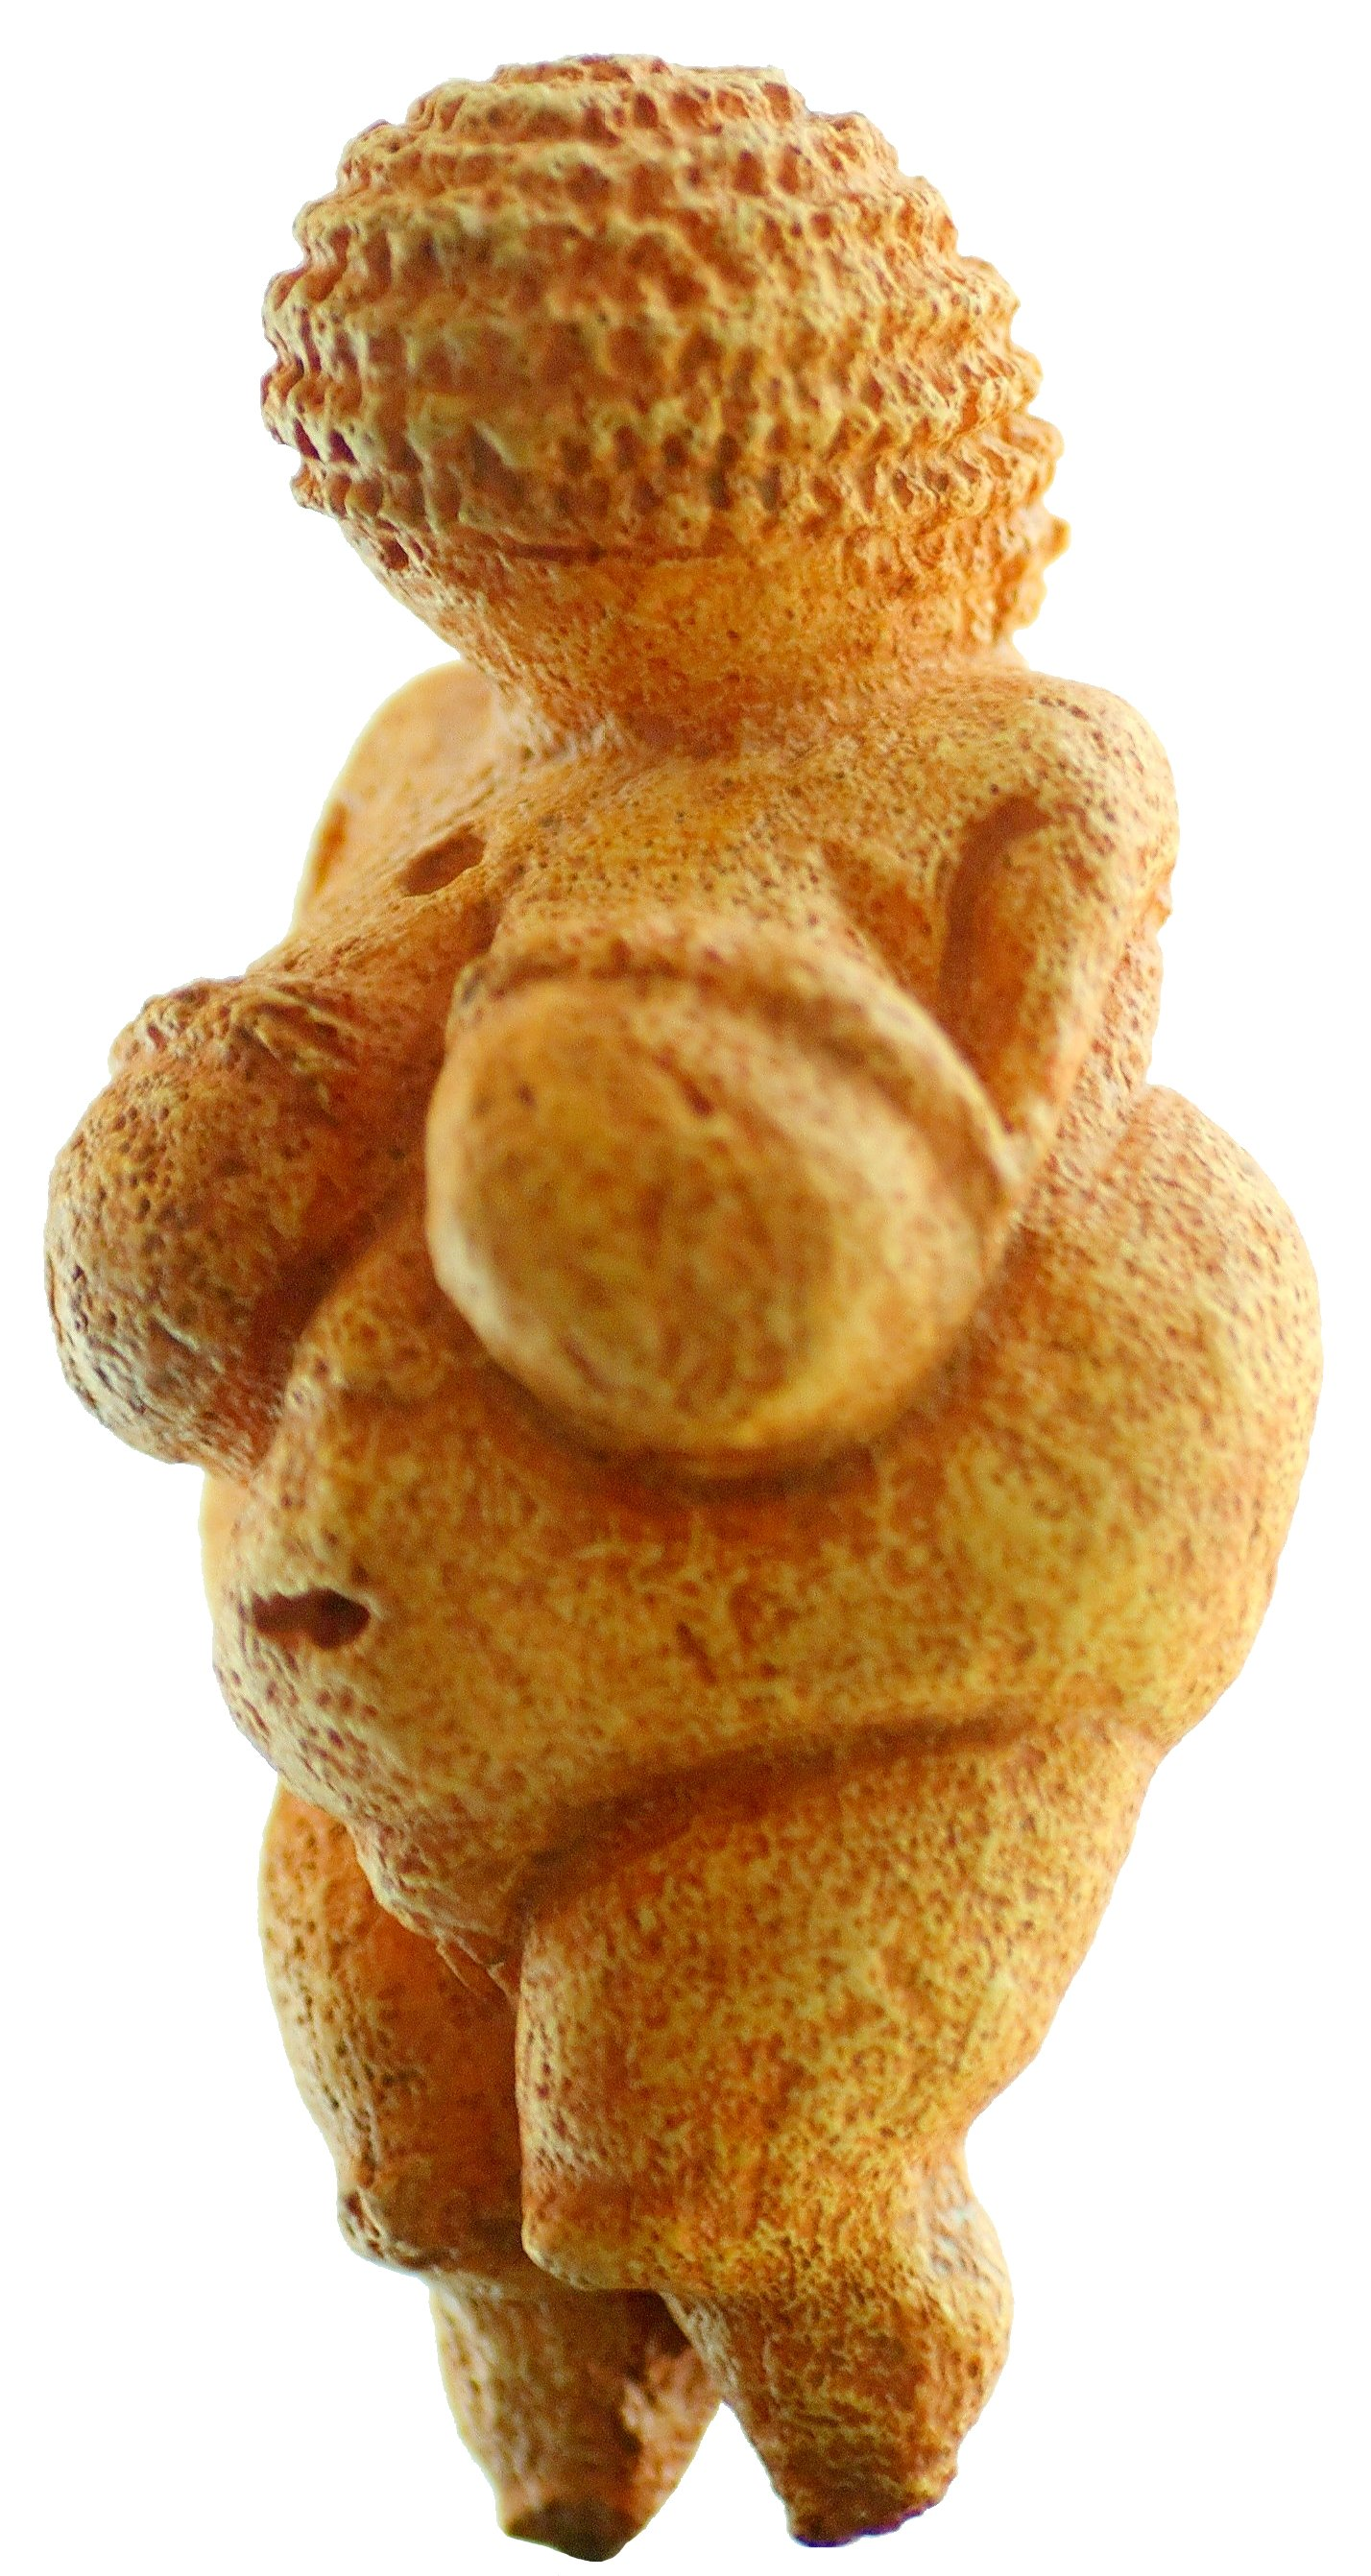 File:Venus von Willendorf 01.jpg - Wikipedia, the free encyclopedia